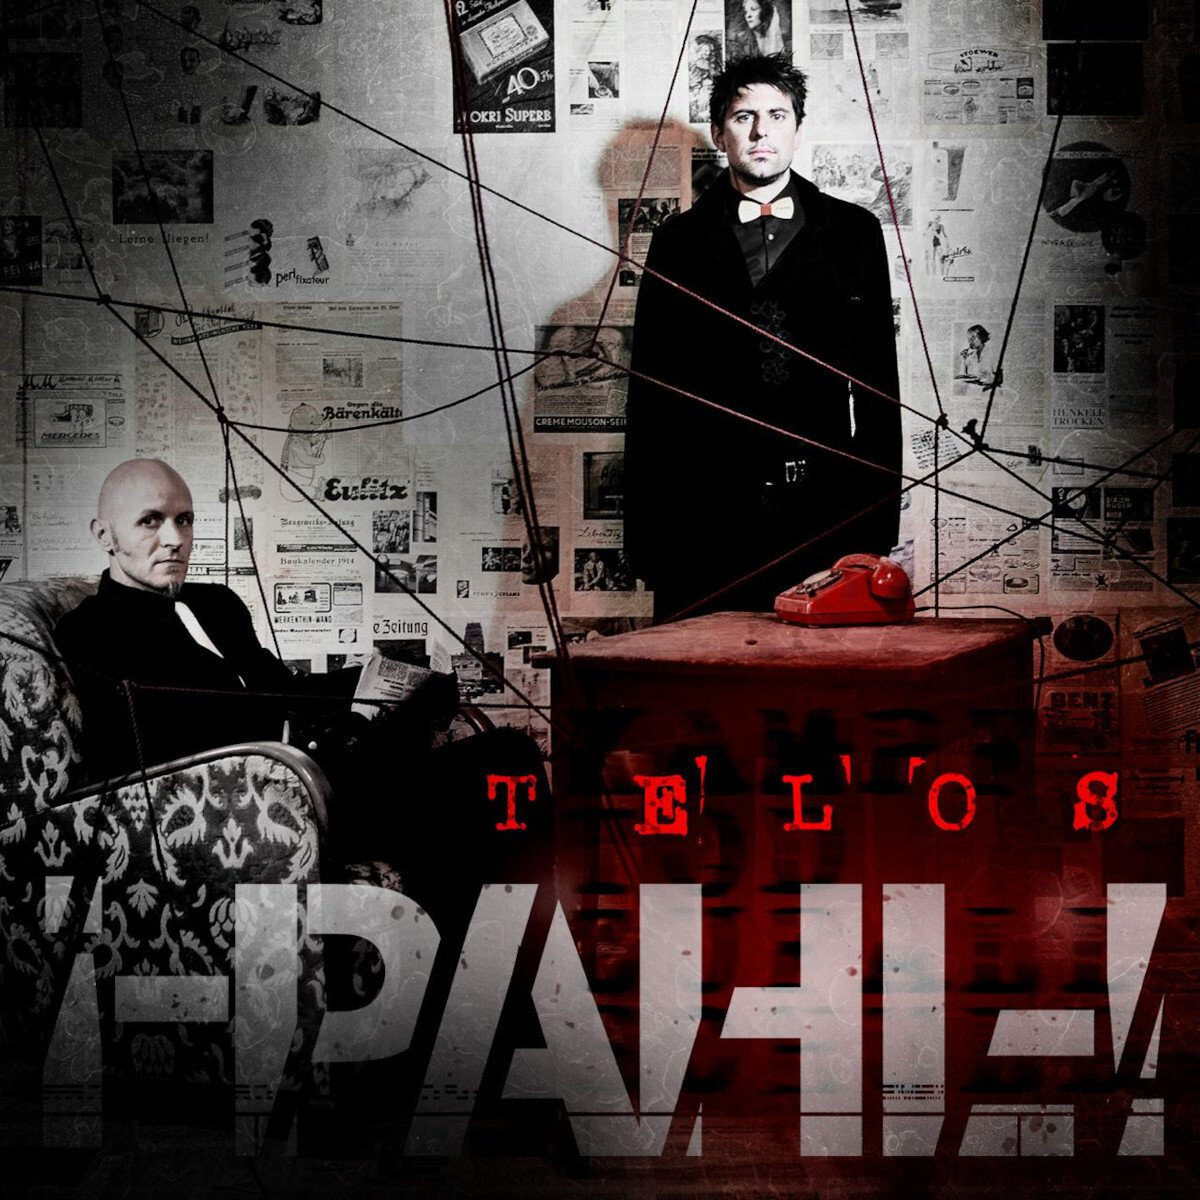 ¡-PAHL-! release video trailer for new single 'Telos'